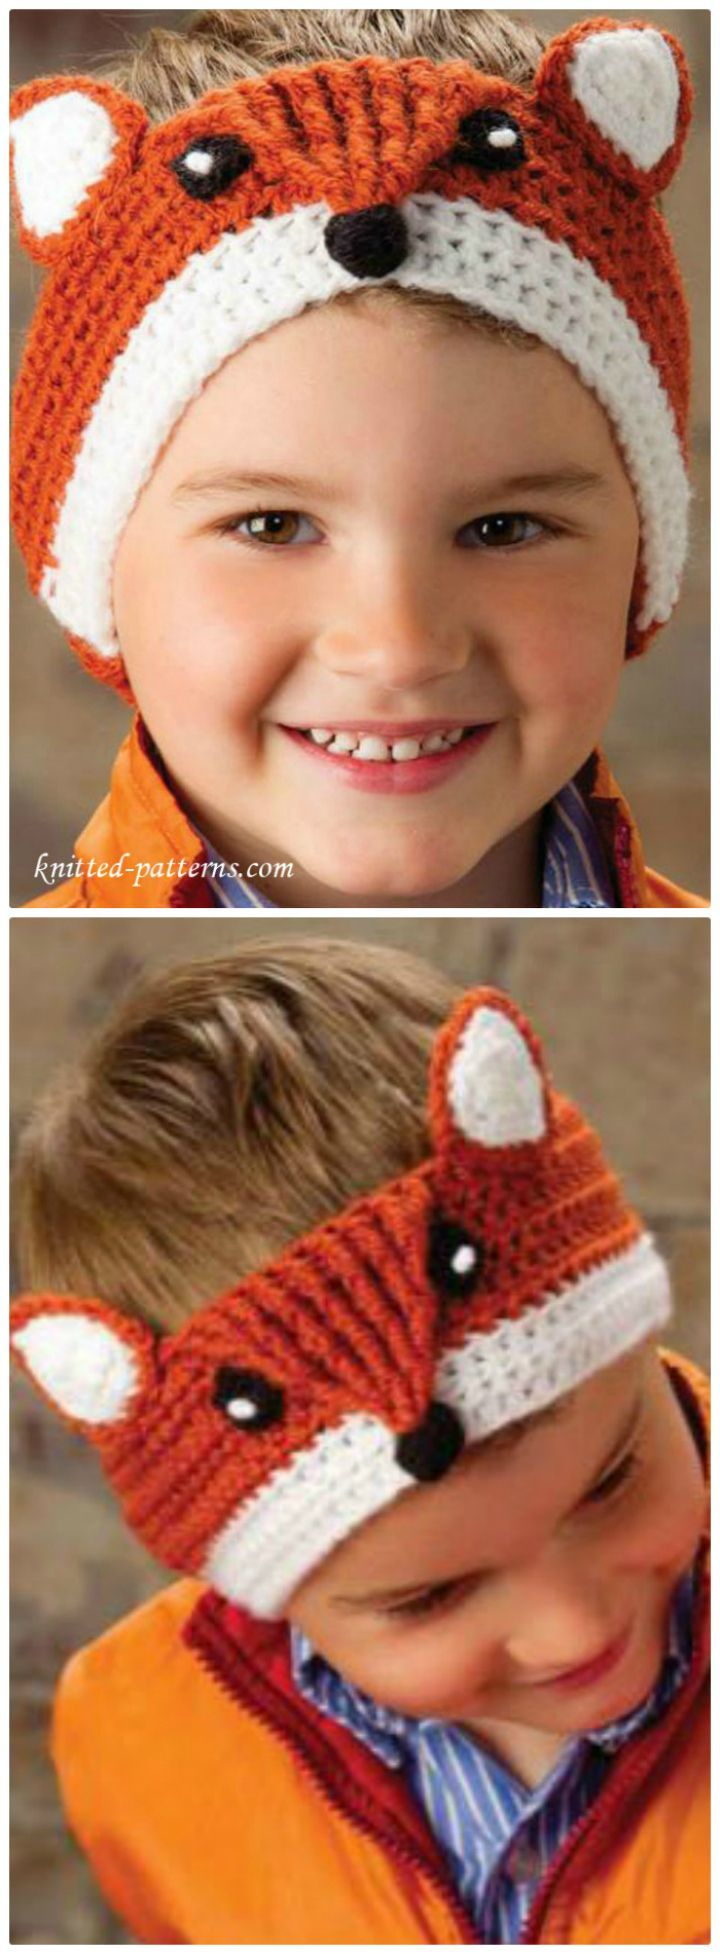 Crochet Fox Headband Free Pattern - 50 Free Crochet Fox Patterns - Crochet Fox Hat - Page 2 of 3 - DIY & Crafts